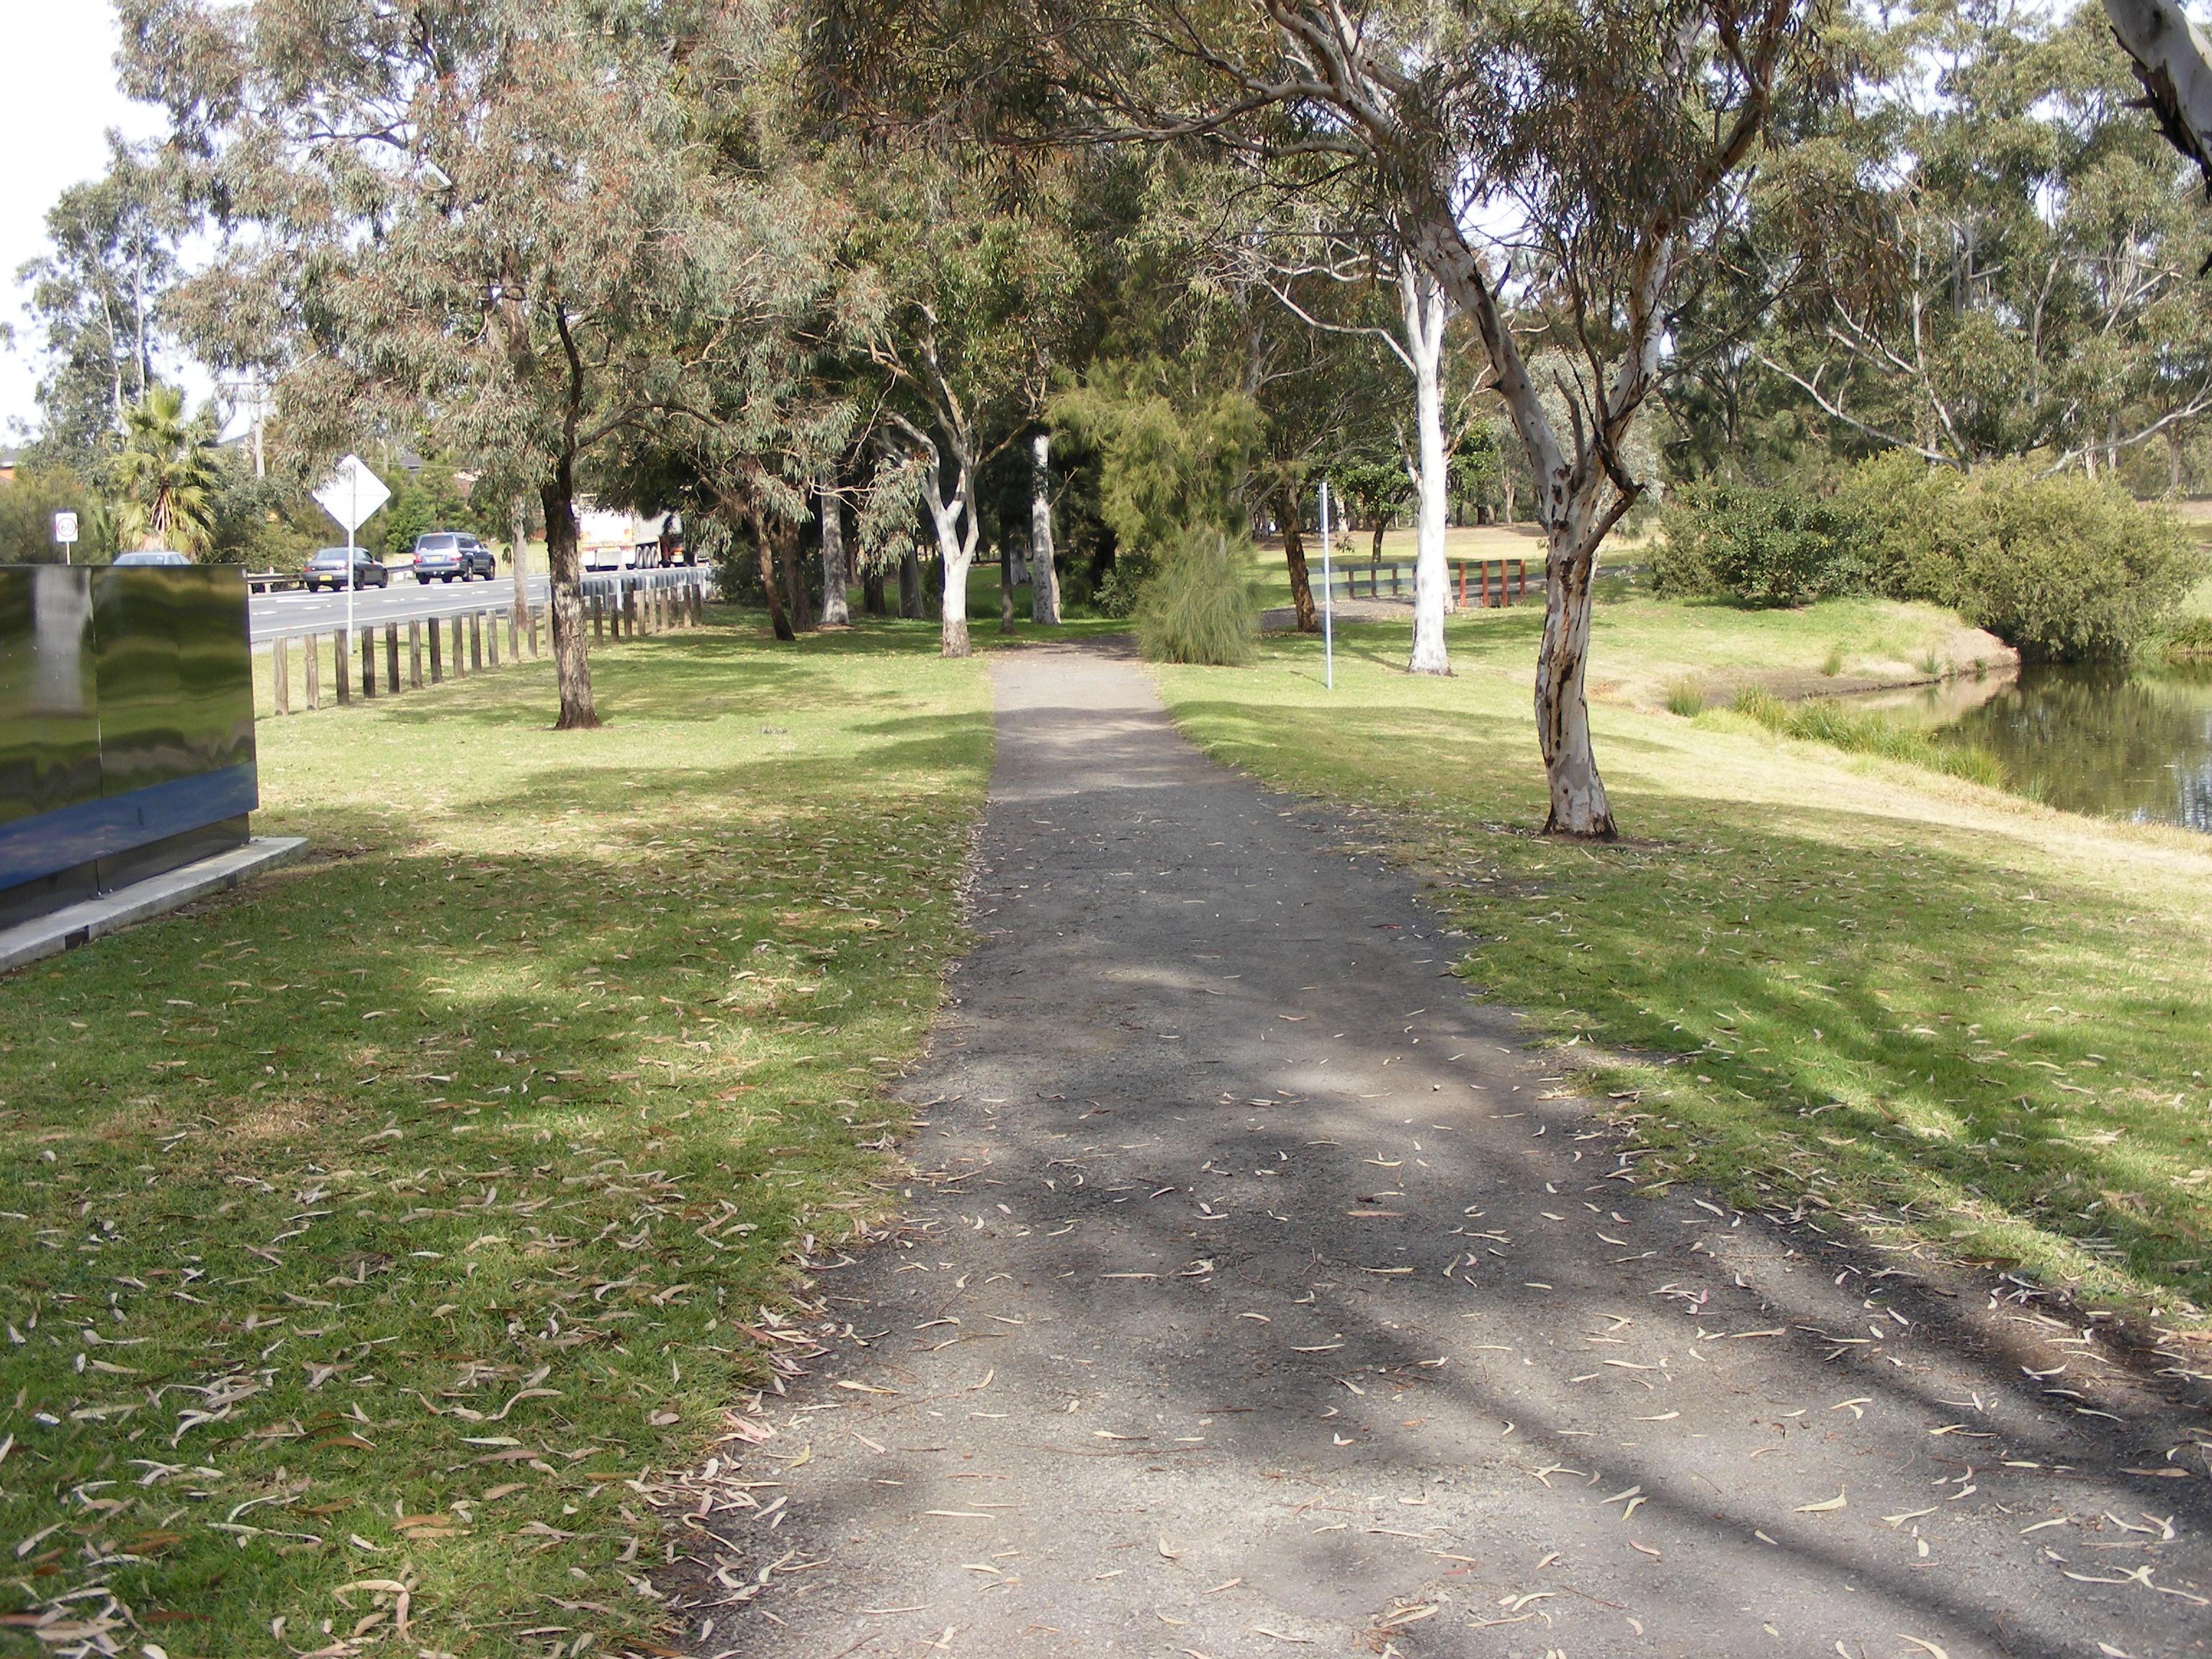 File:Mirambeena Regional Park, Georges Hall, New South Wales.jpg